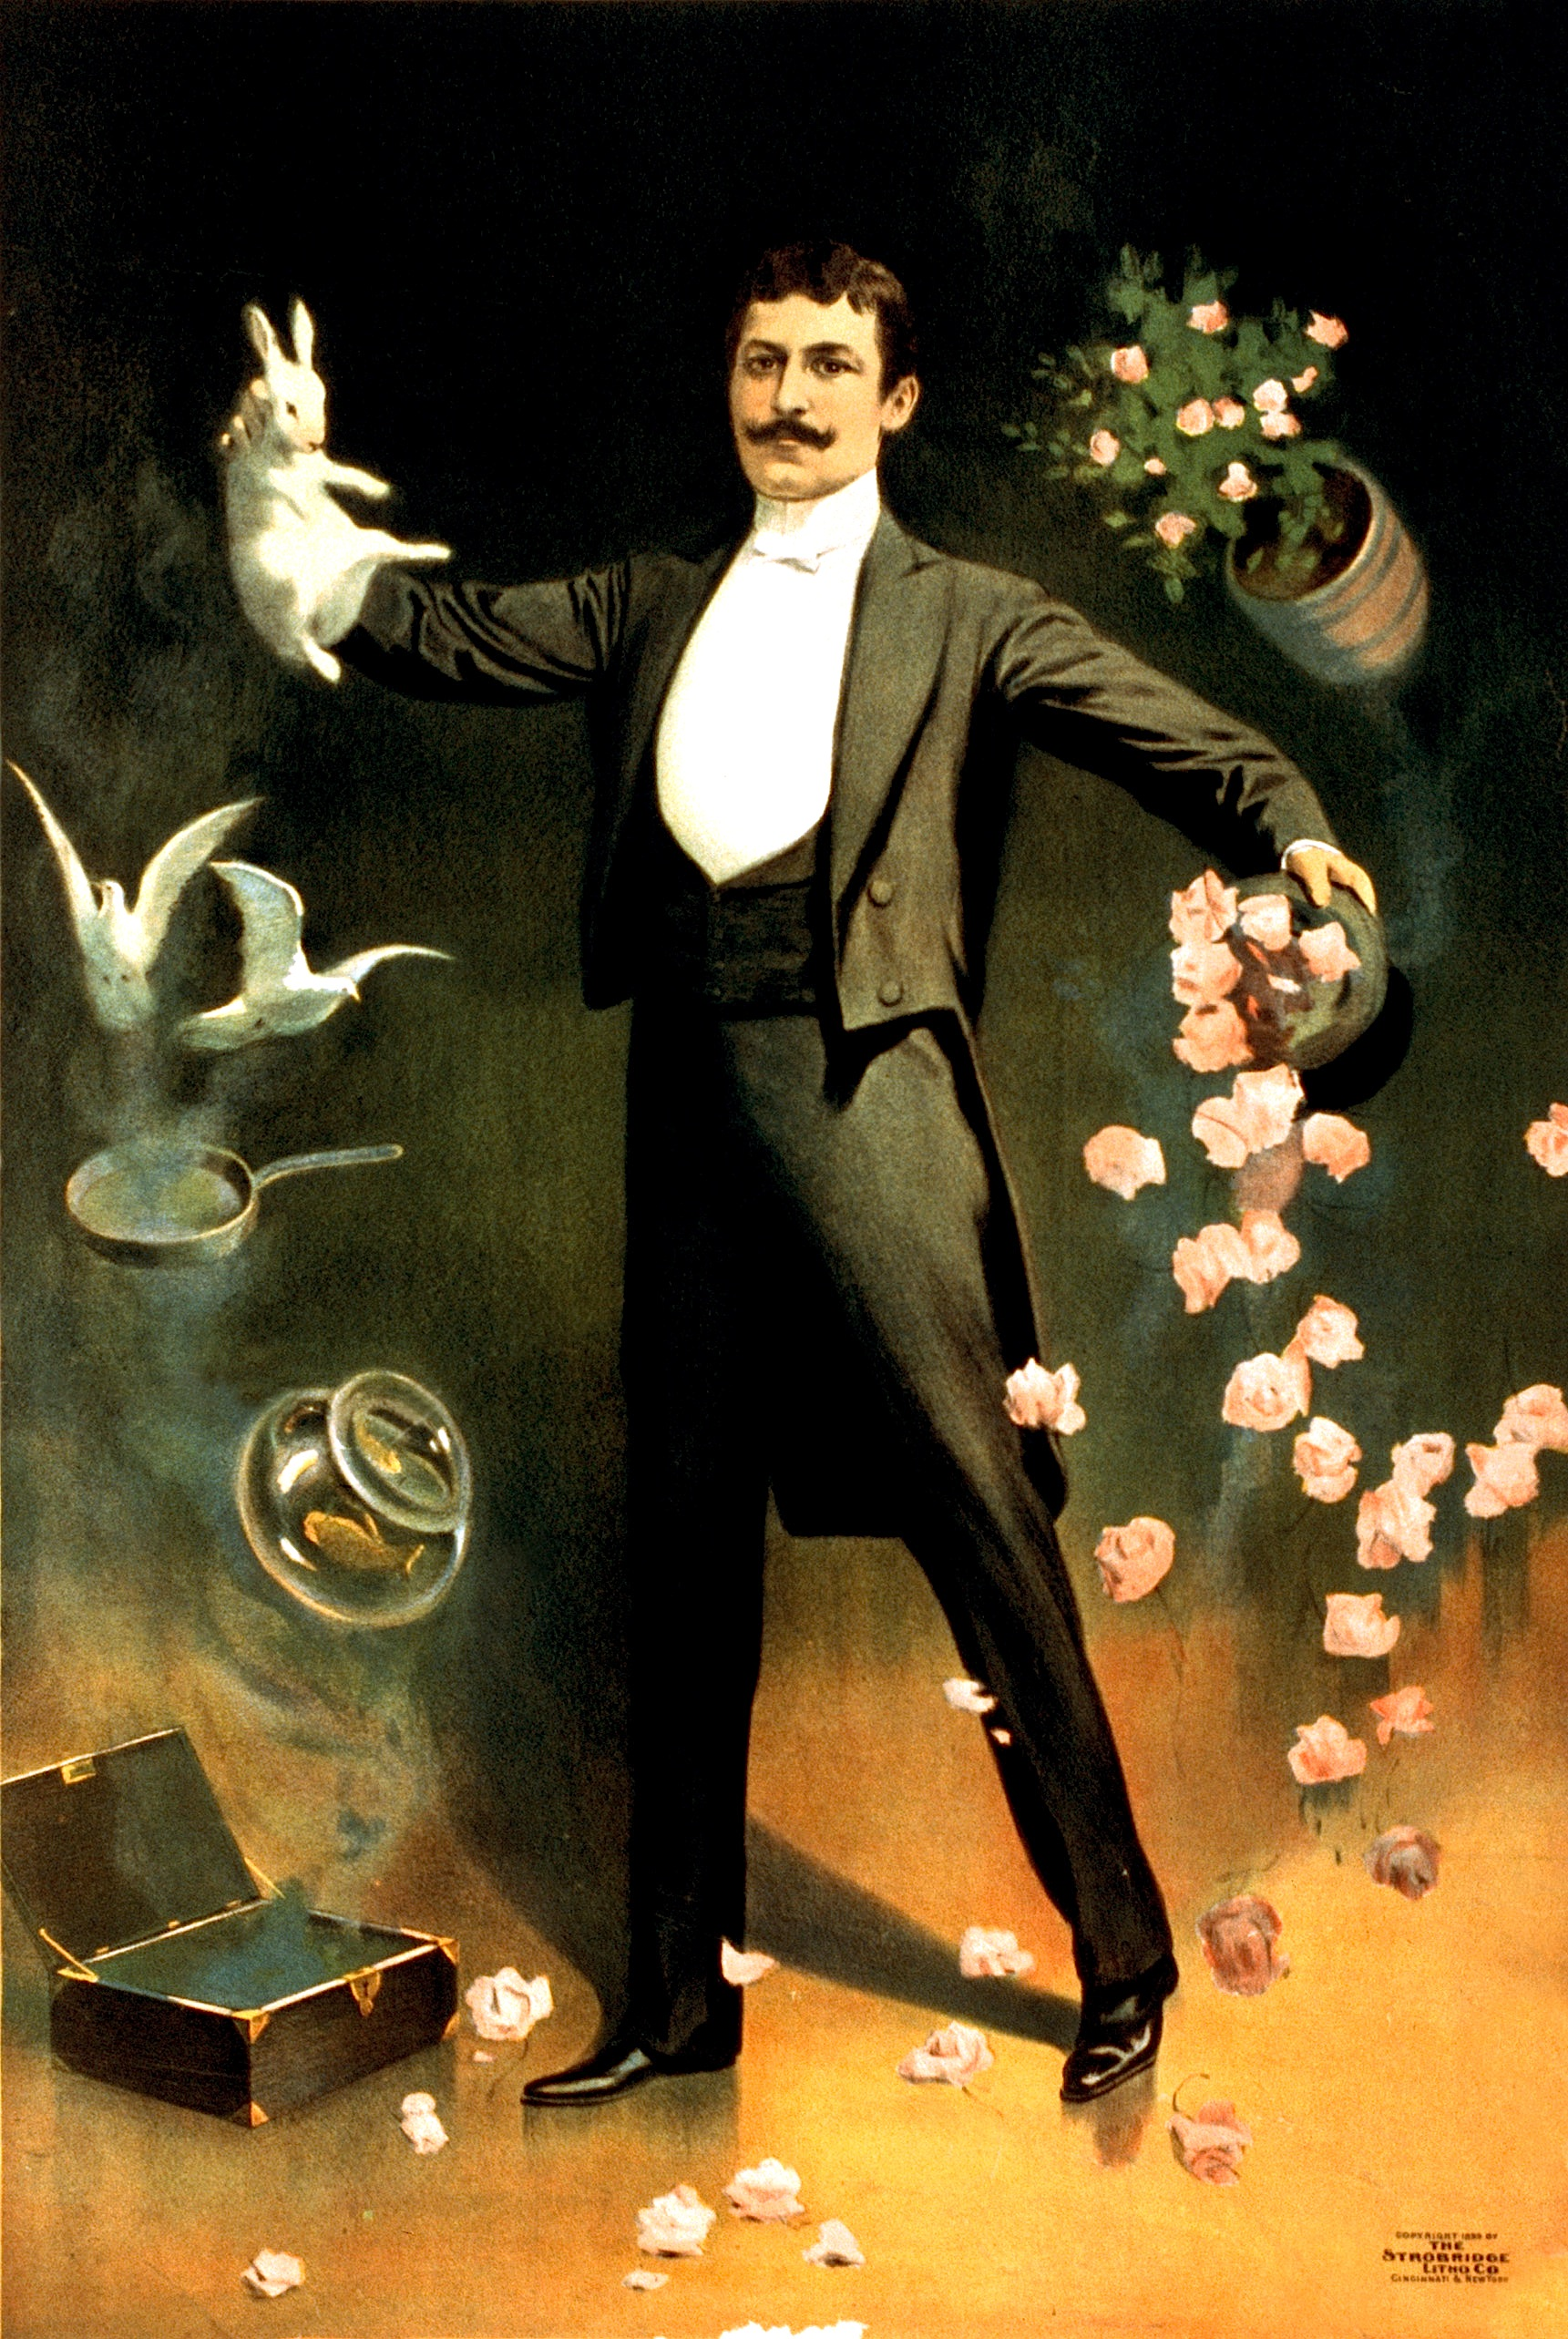 File:Zan Zig performing with rabbit and roses, magician poster ...